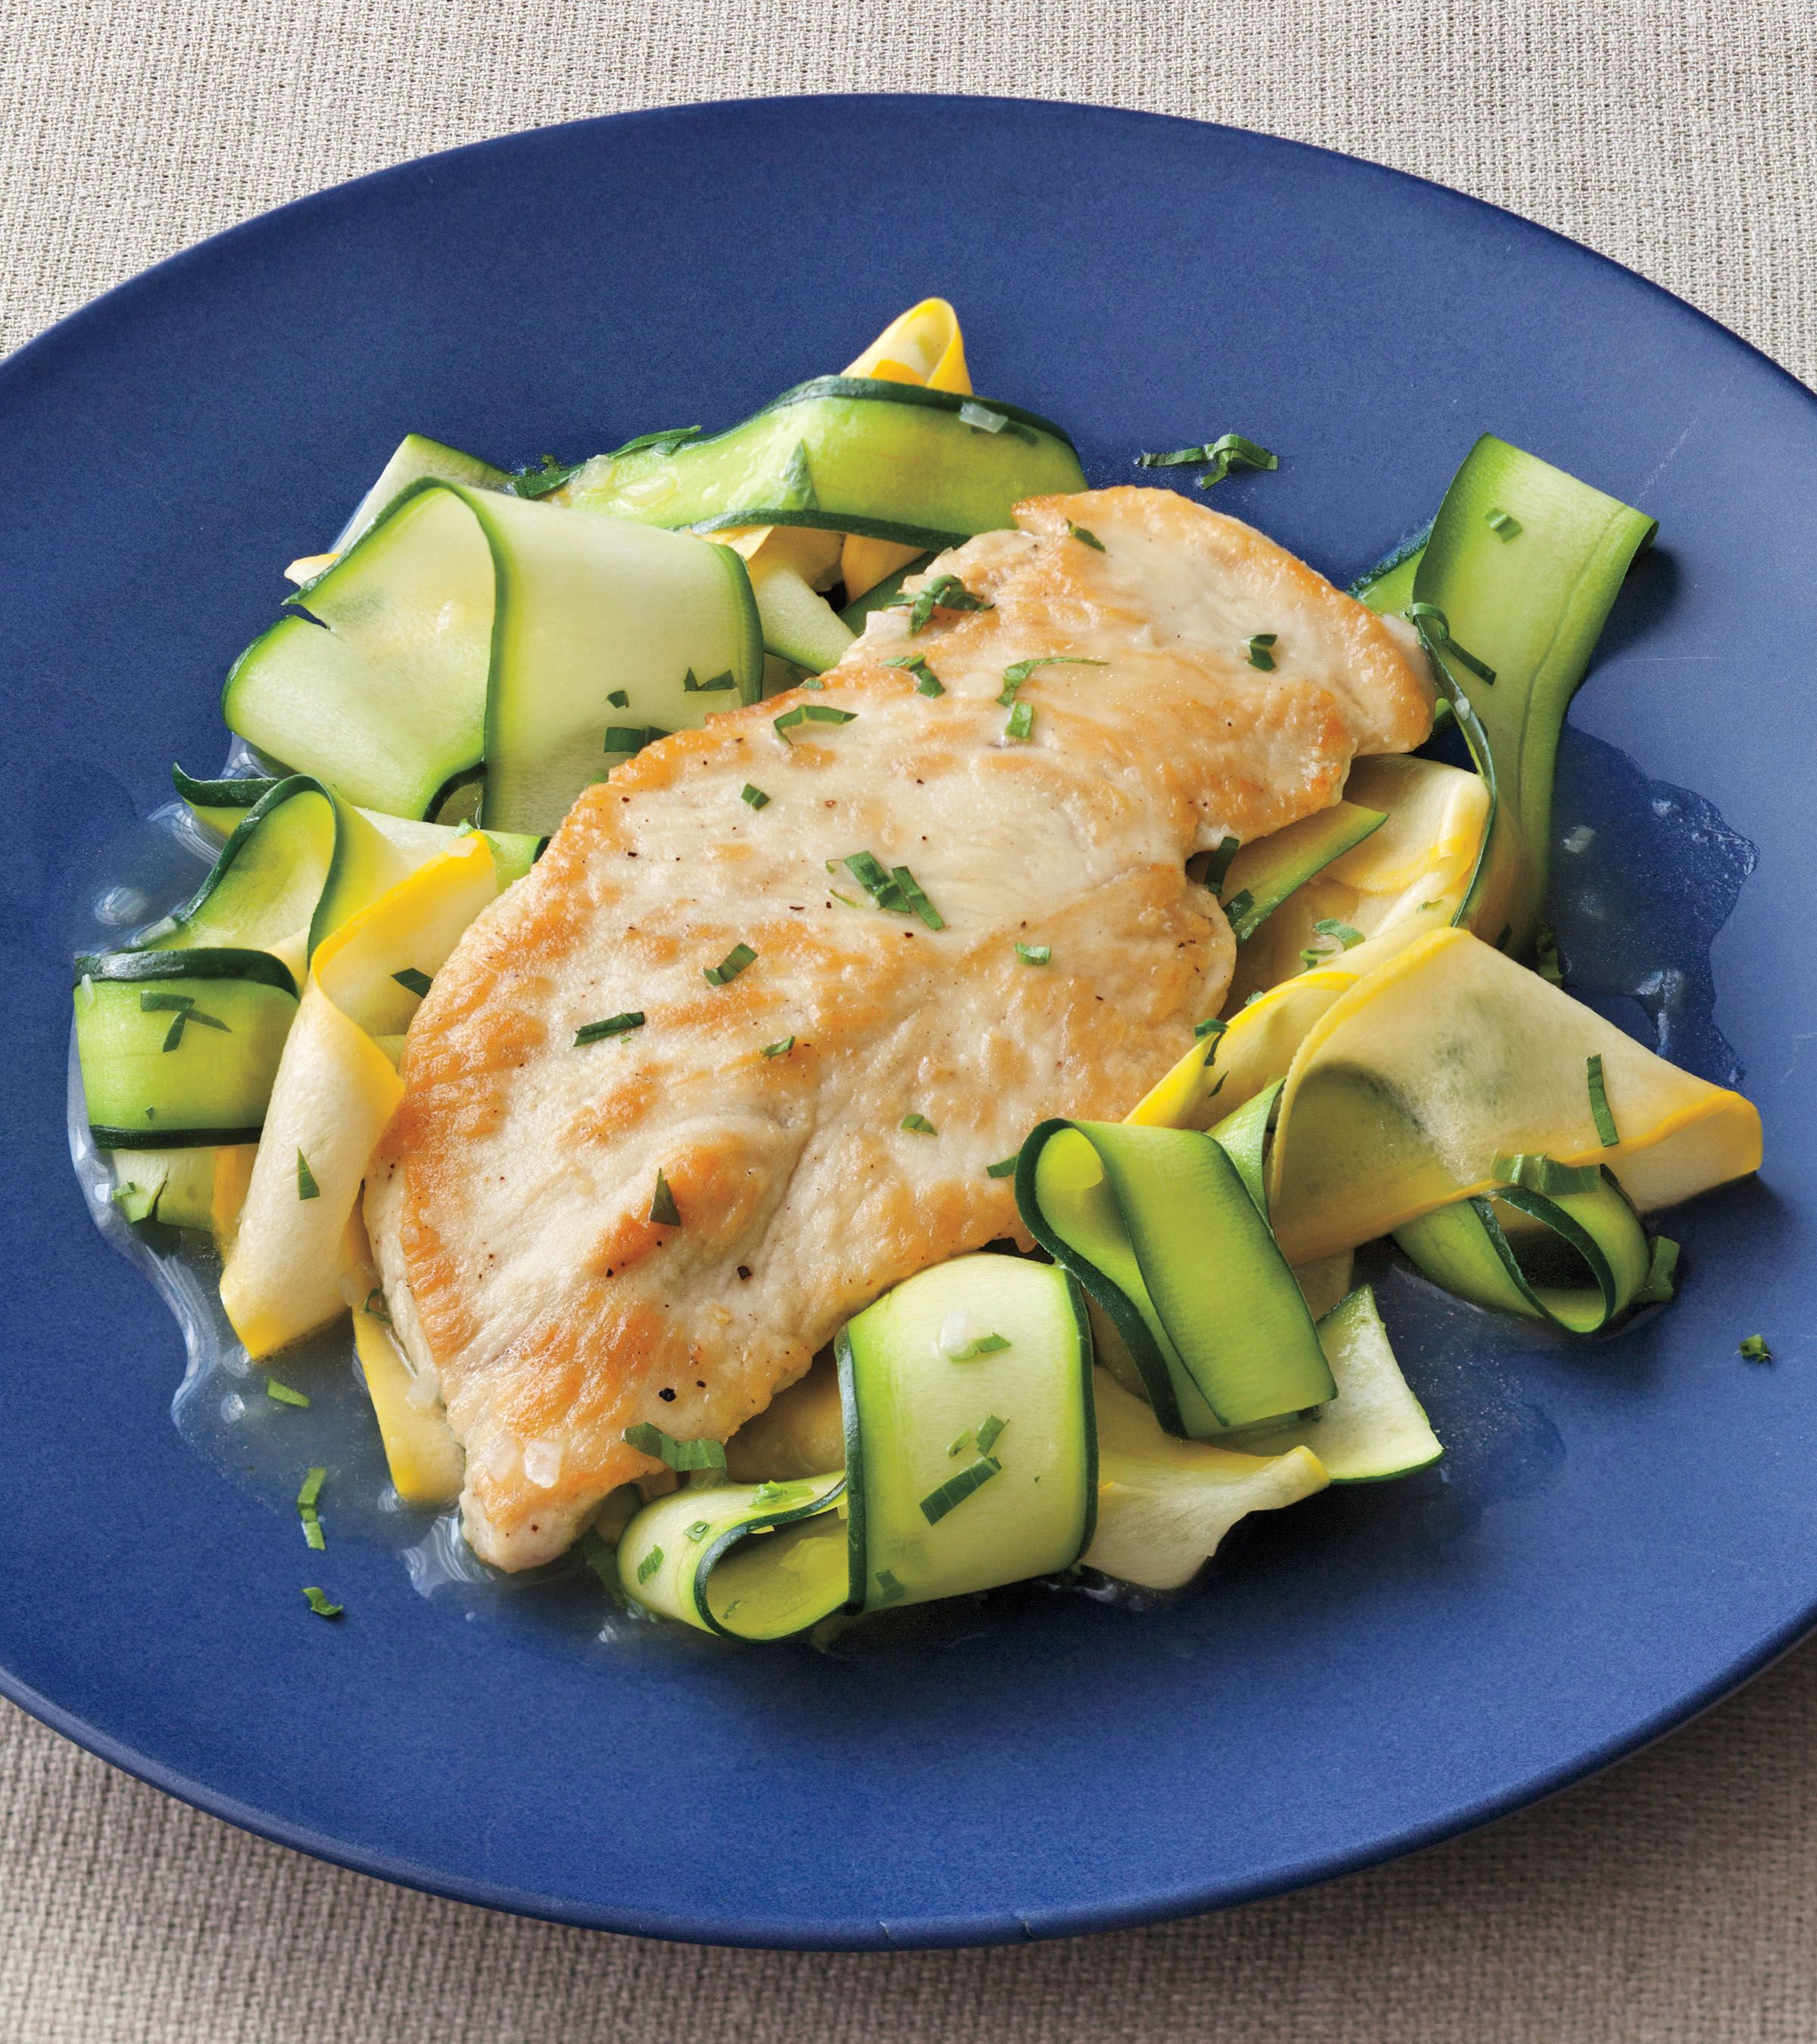 Lemon tarragon chicken with squash ribbons i ellie krieger food food network star ellie kriegers dos and donts of cooking healthfully forumfinder Images